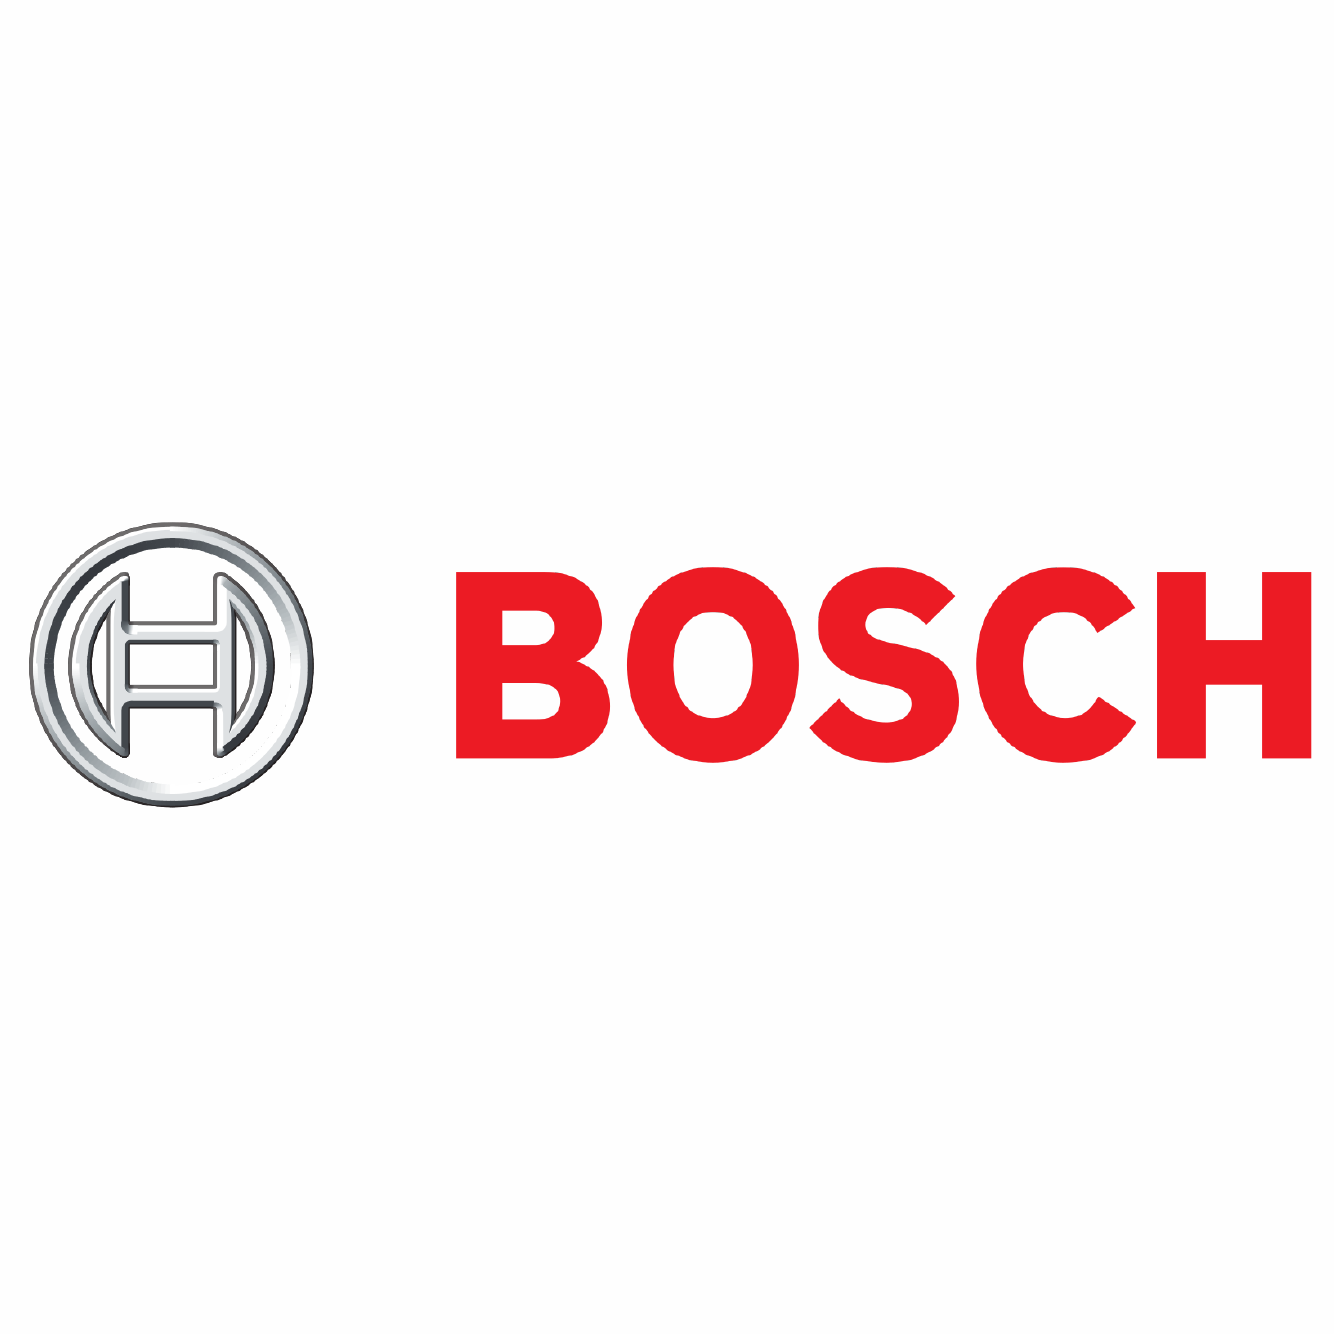 https://www.securetech.ae/wp-content/uploads/2019/02/06.BOSCH_.png